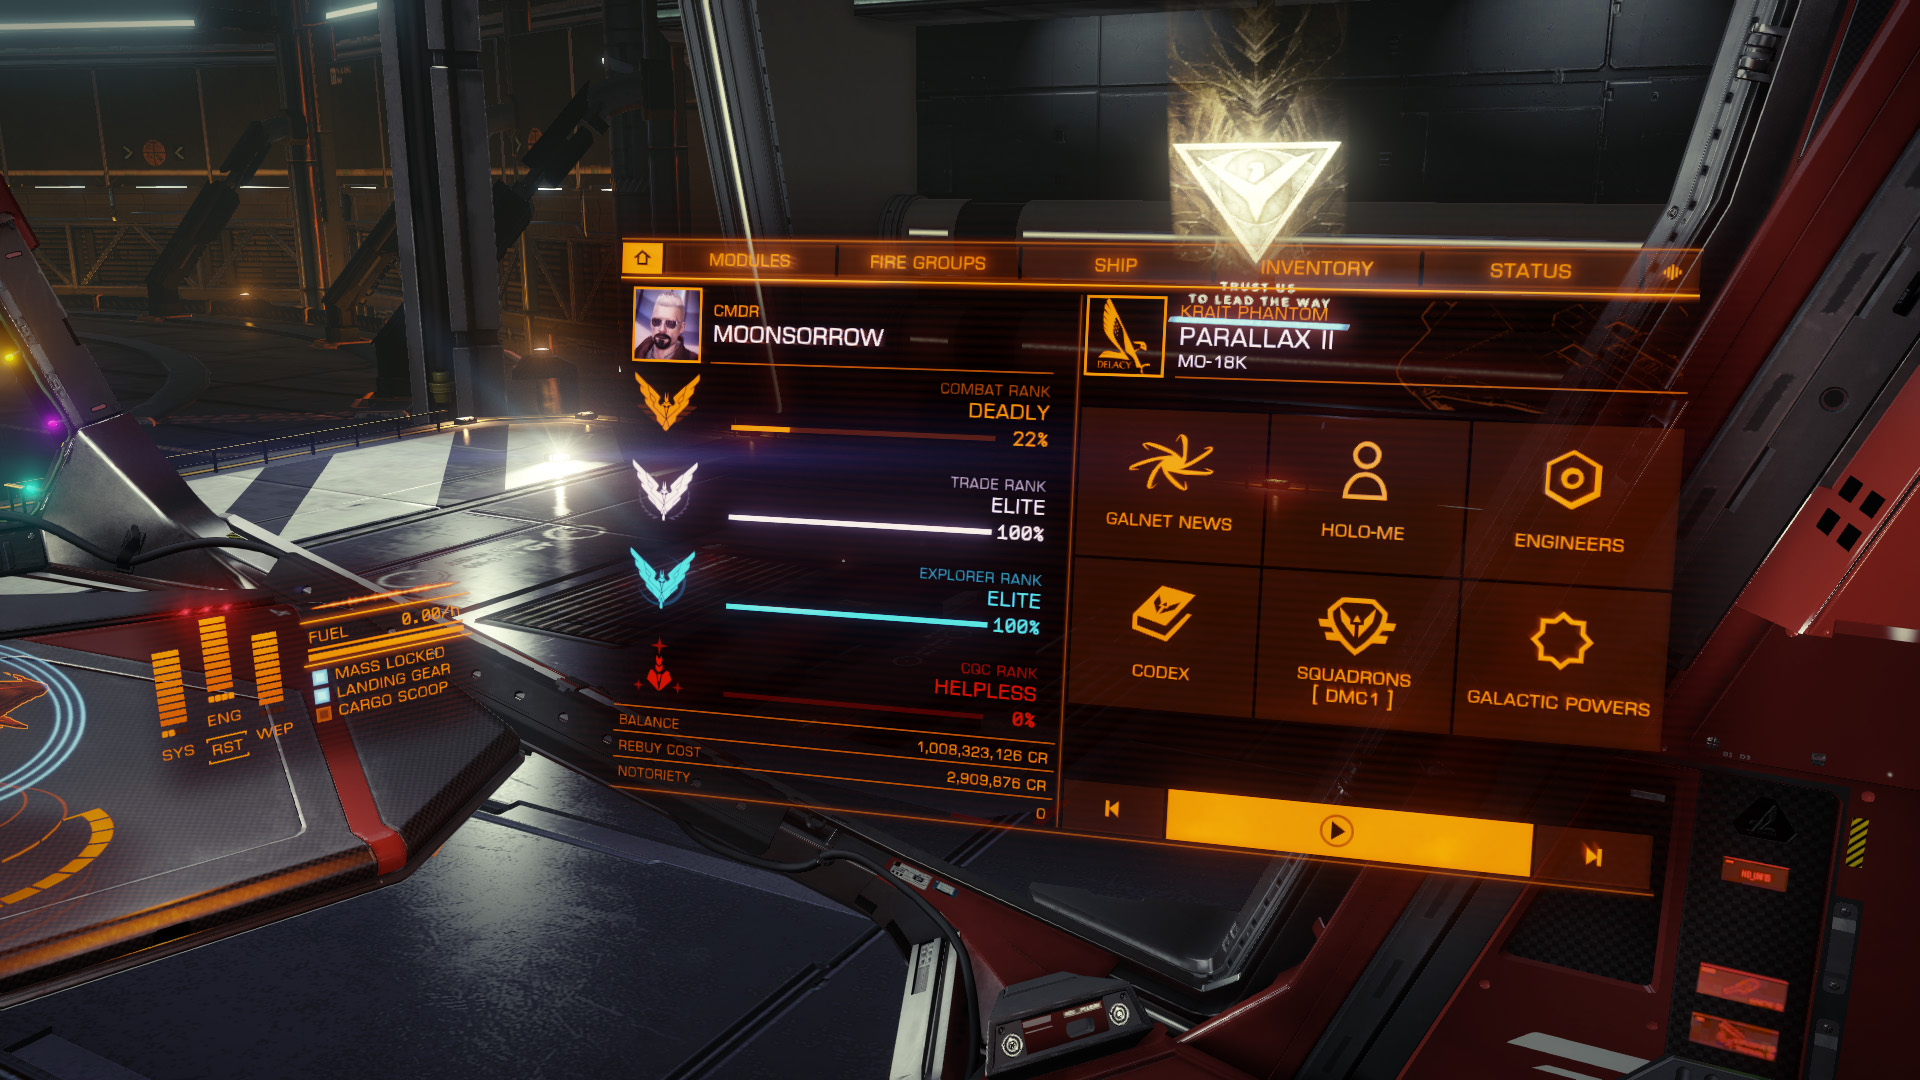 Elite: Dangerous beginner's guide: A screenshot showing where to find your ship rebuy cost